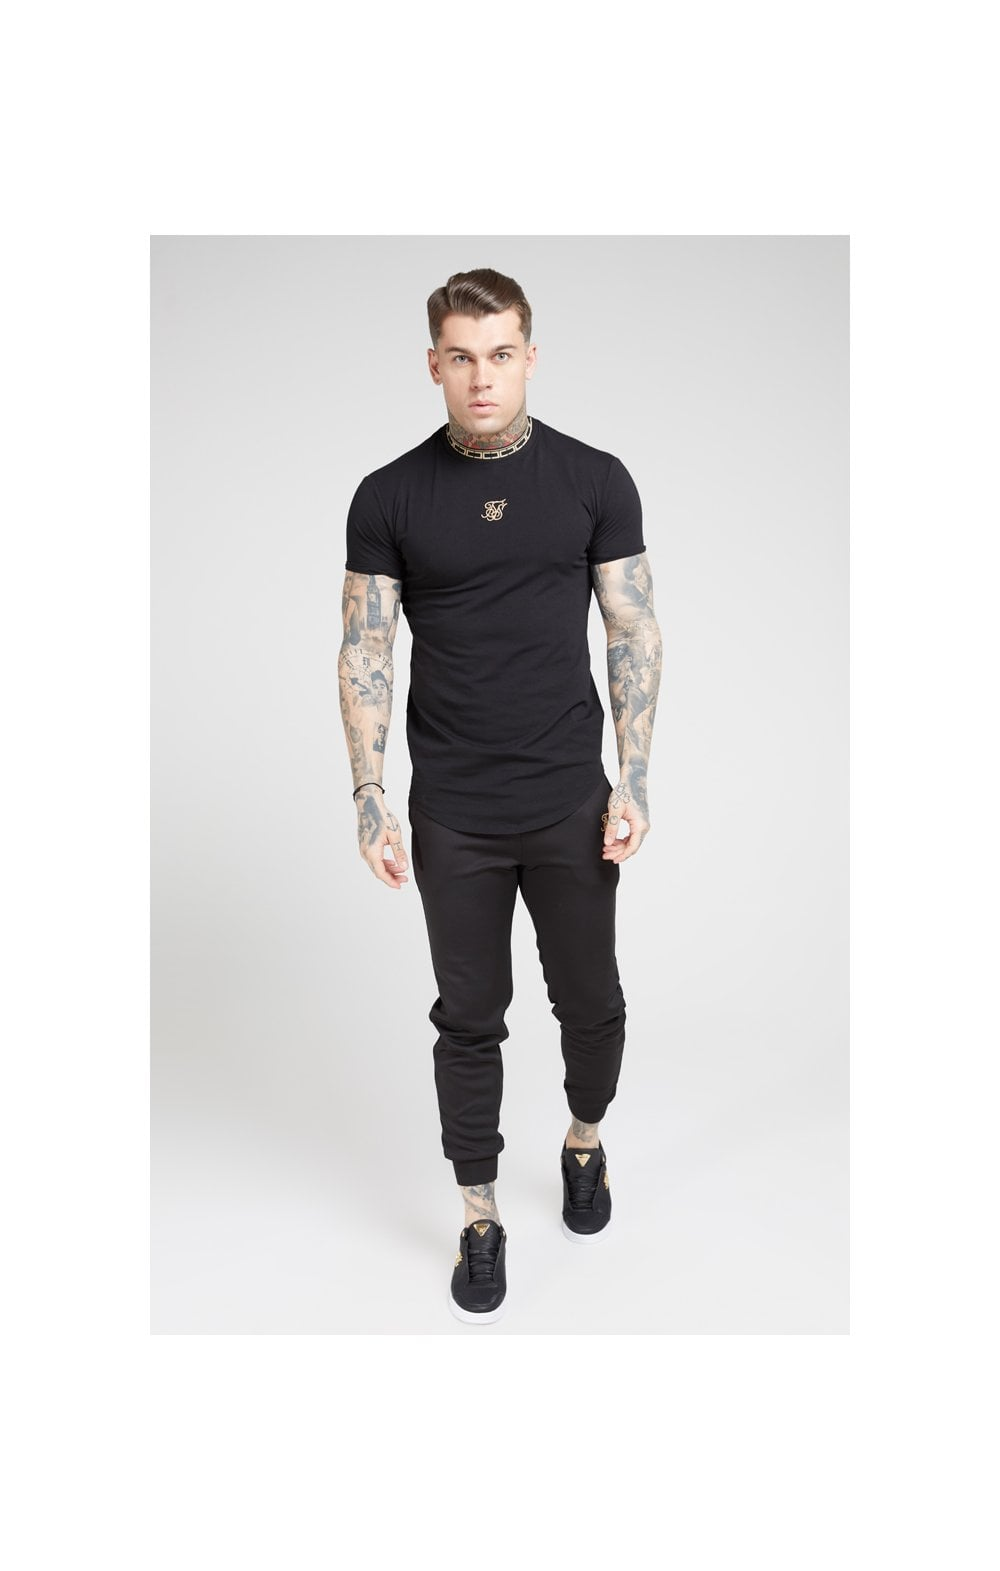 Load image into Gallery viewer, SikSilk Tape Collar Gym Tee - Black & Gold (3)